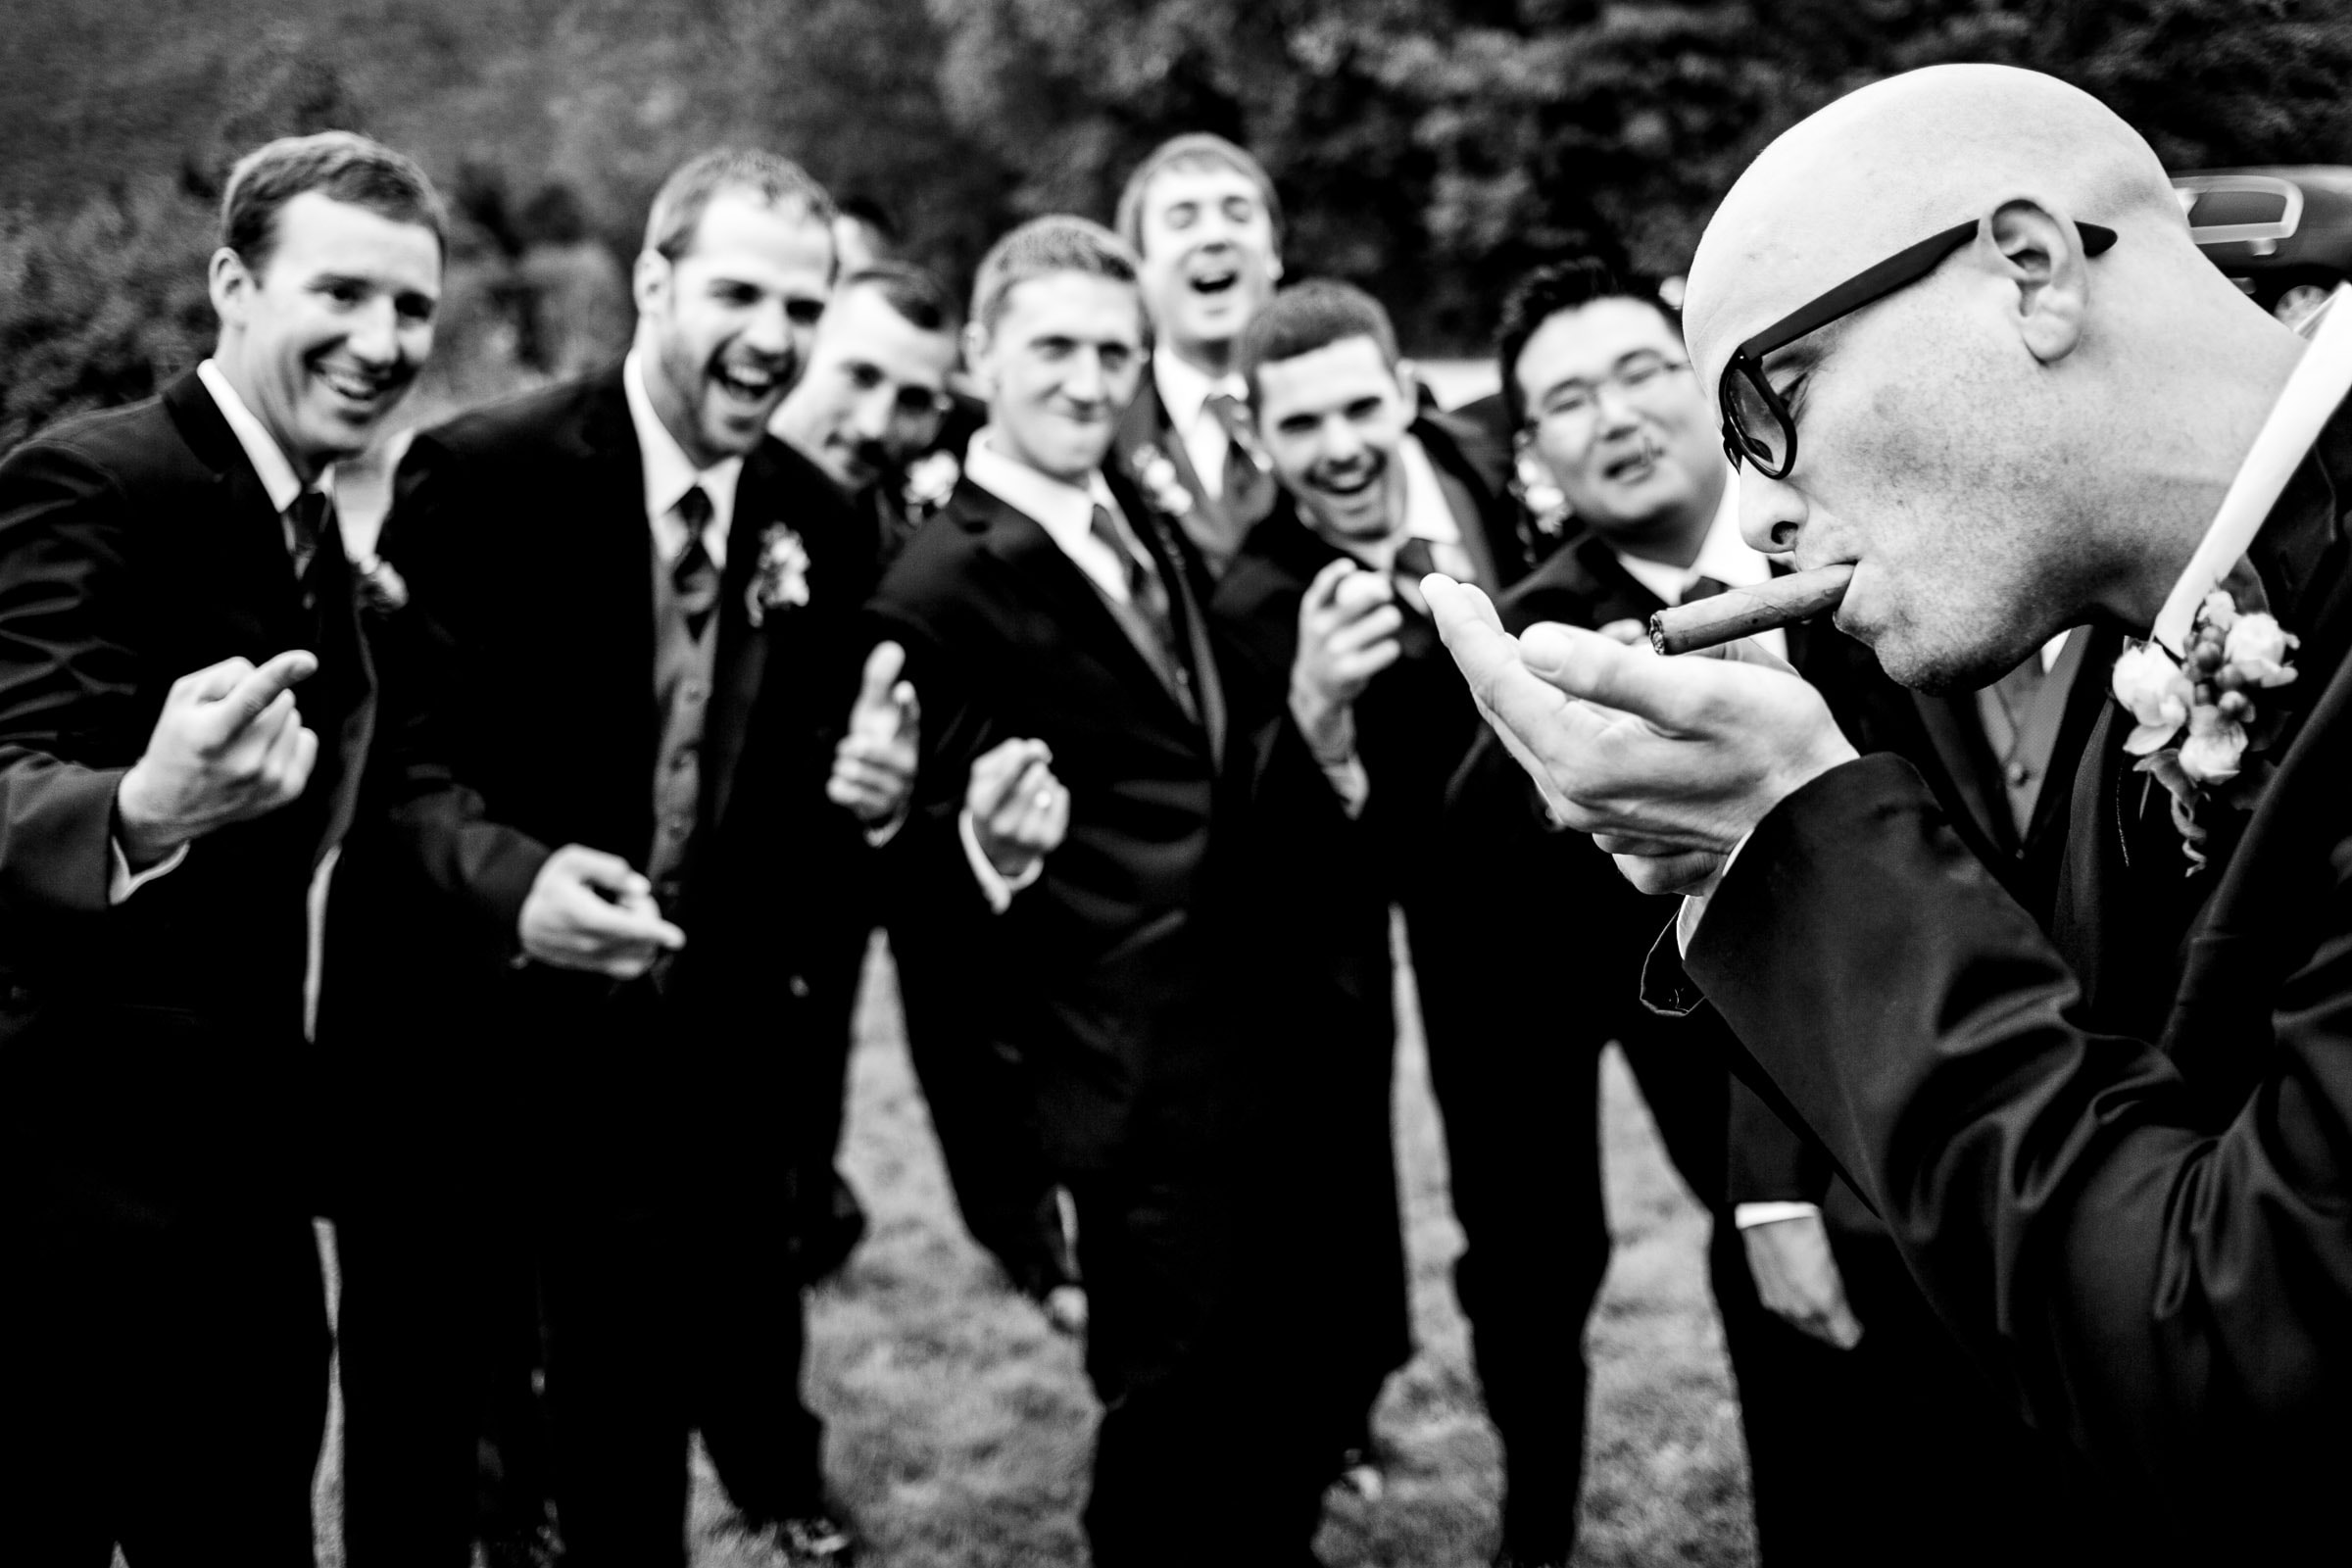 Groomsmen smoking cigars with friends at a Trapp Family Lodge wedding ceremony in Stowe, Vermont.